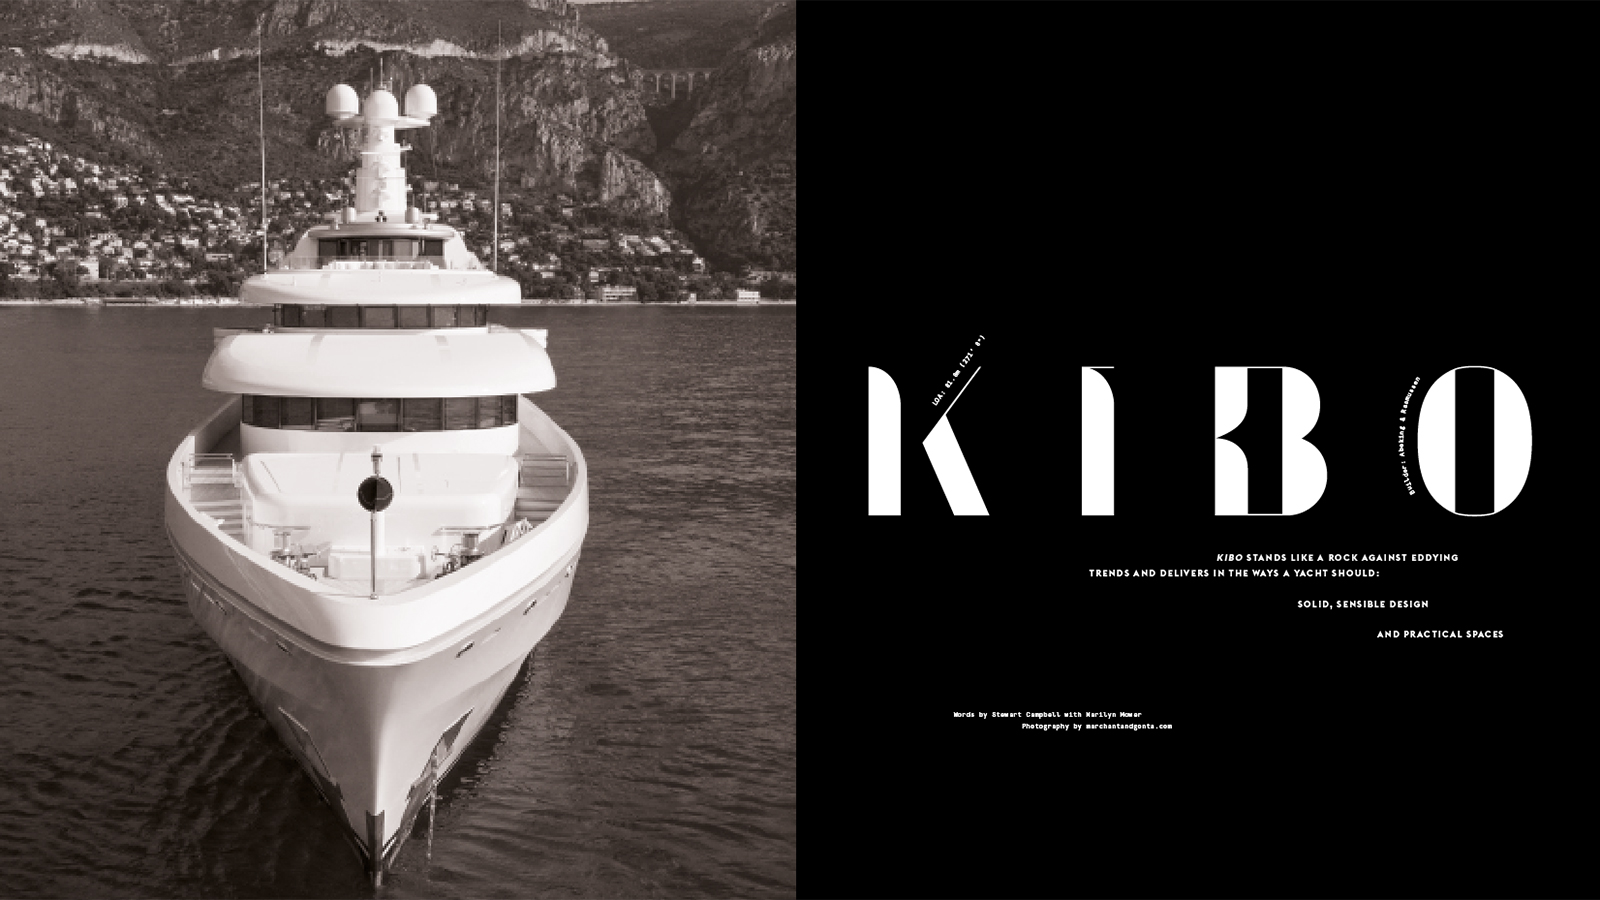 Your sneak peek inside The Superyachts 29